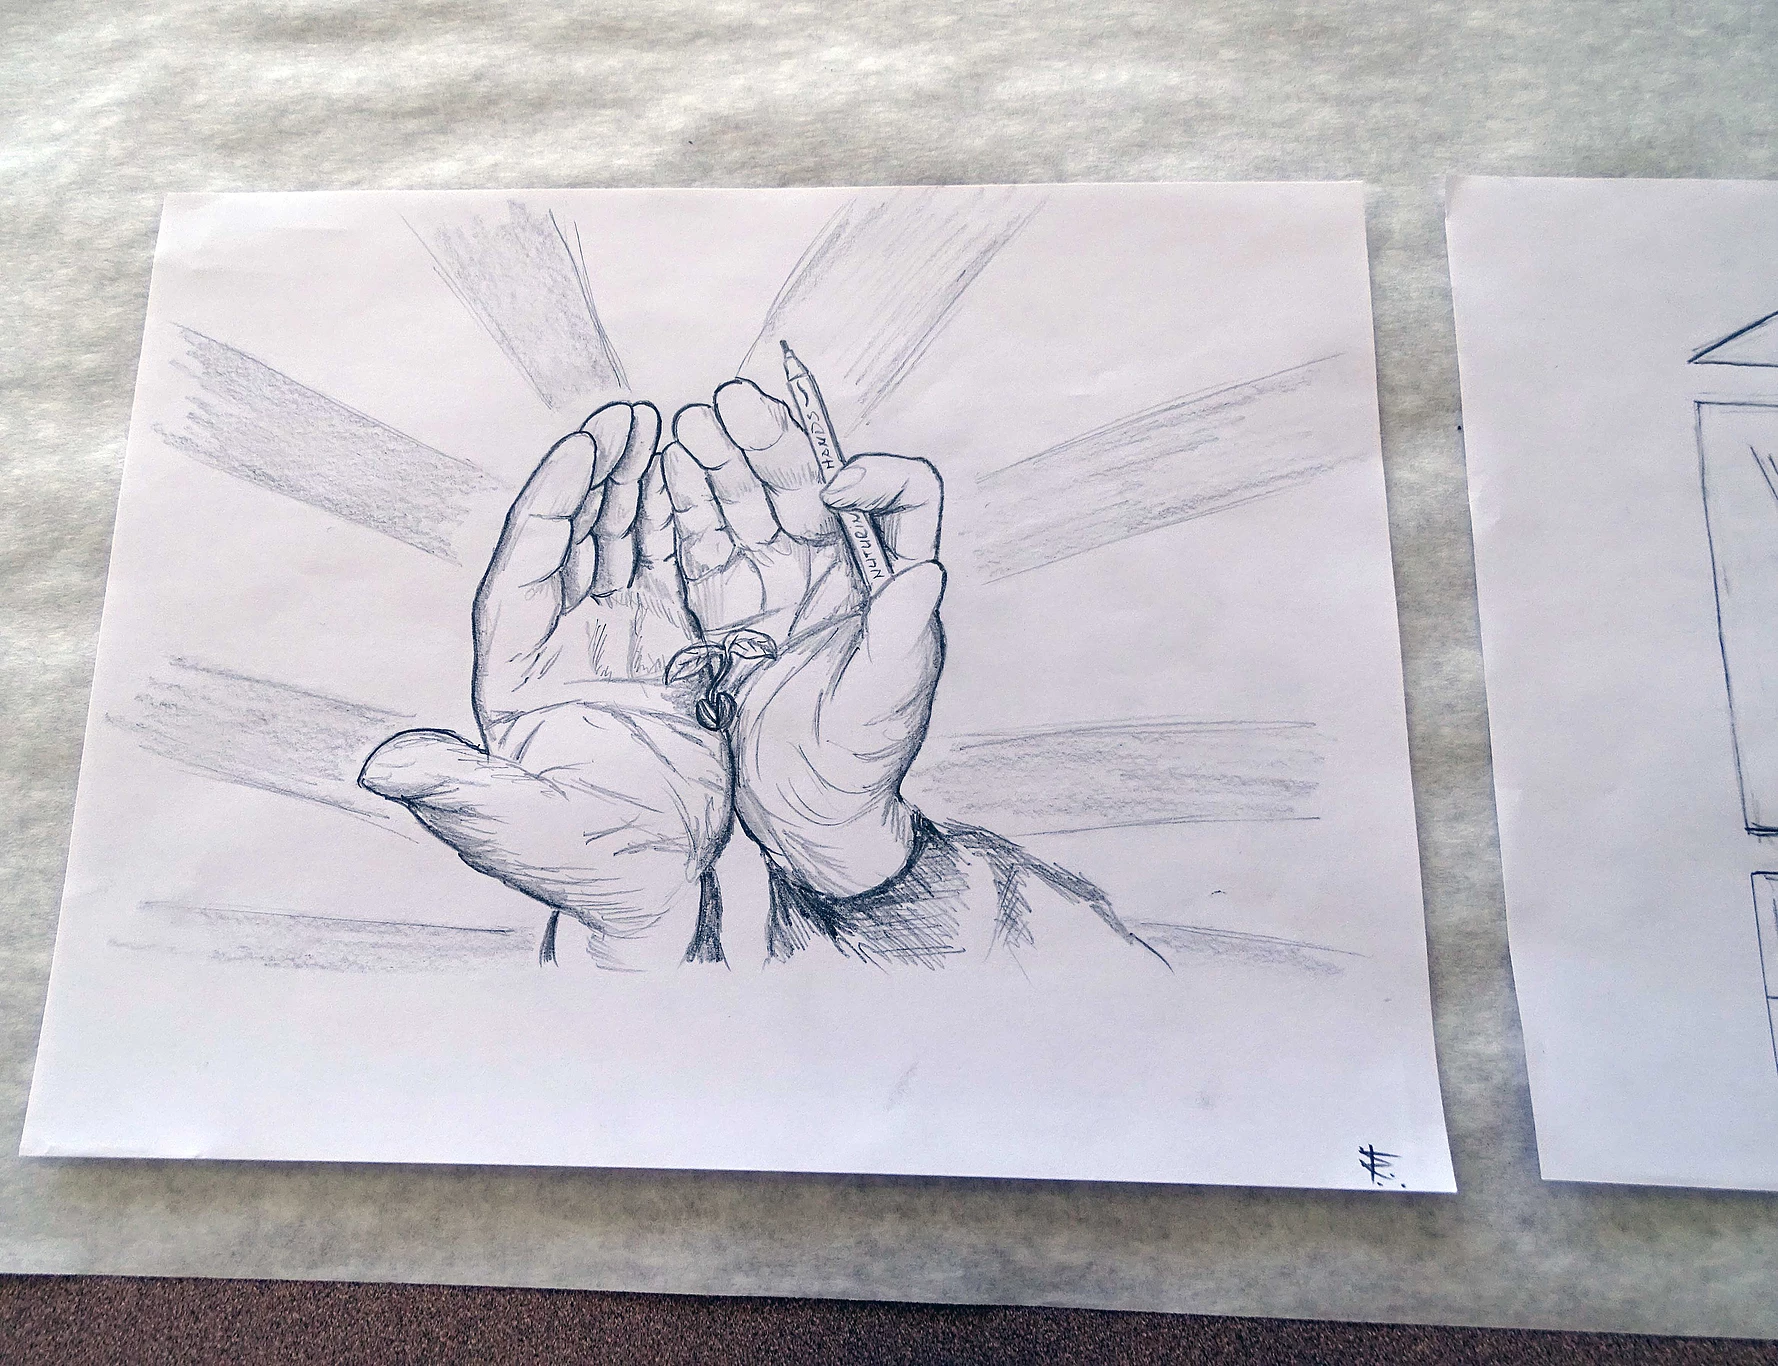 Drawing of open hands holding a marker